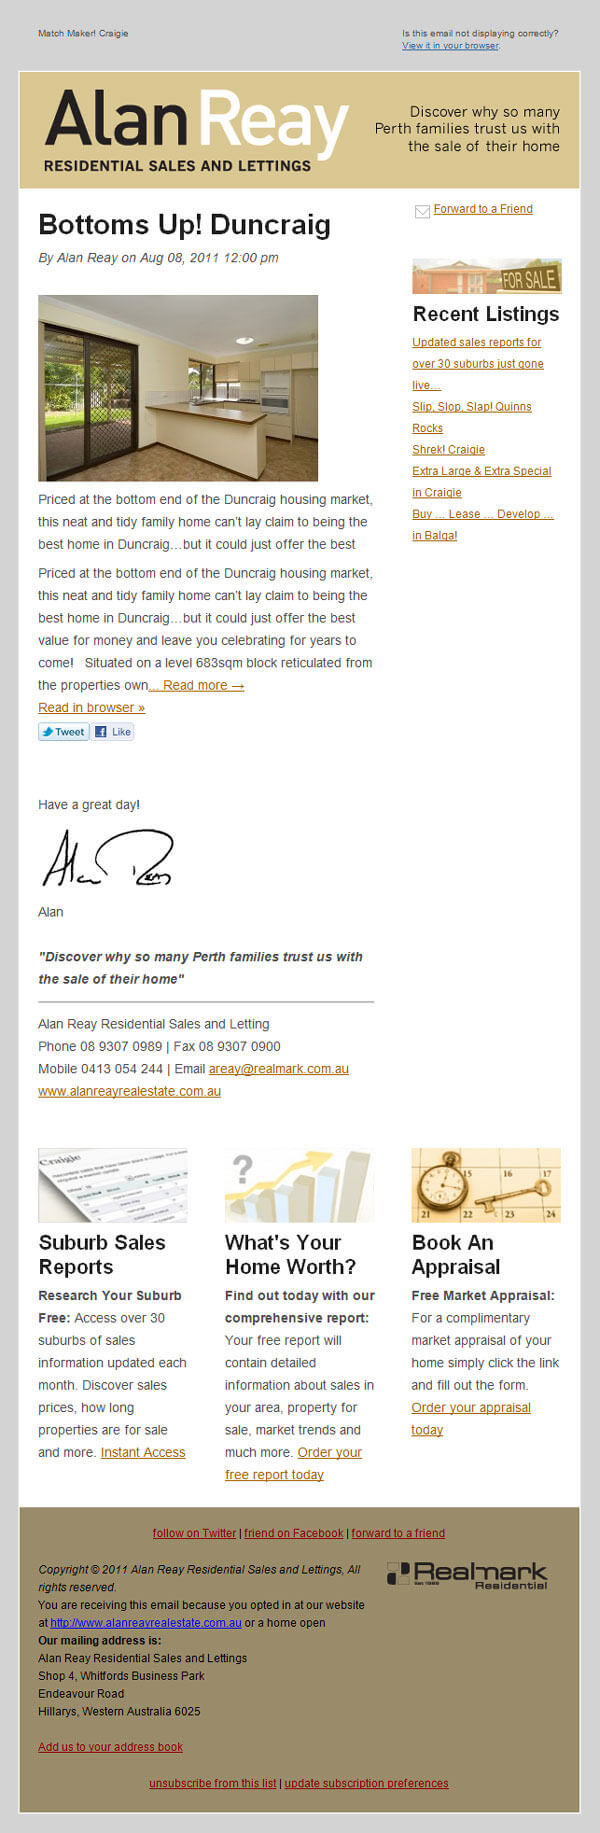 Alan-Reay - real estate email